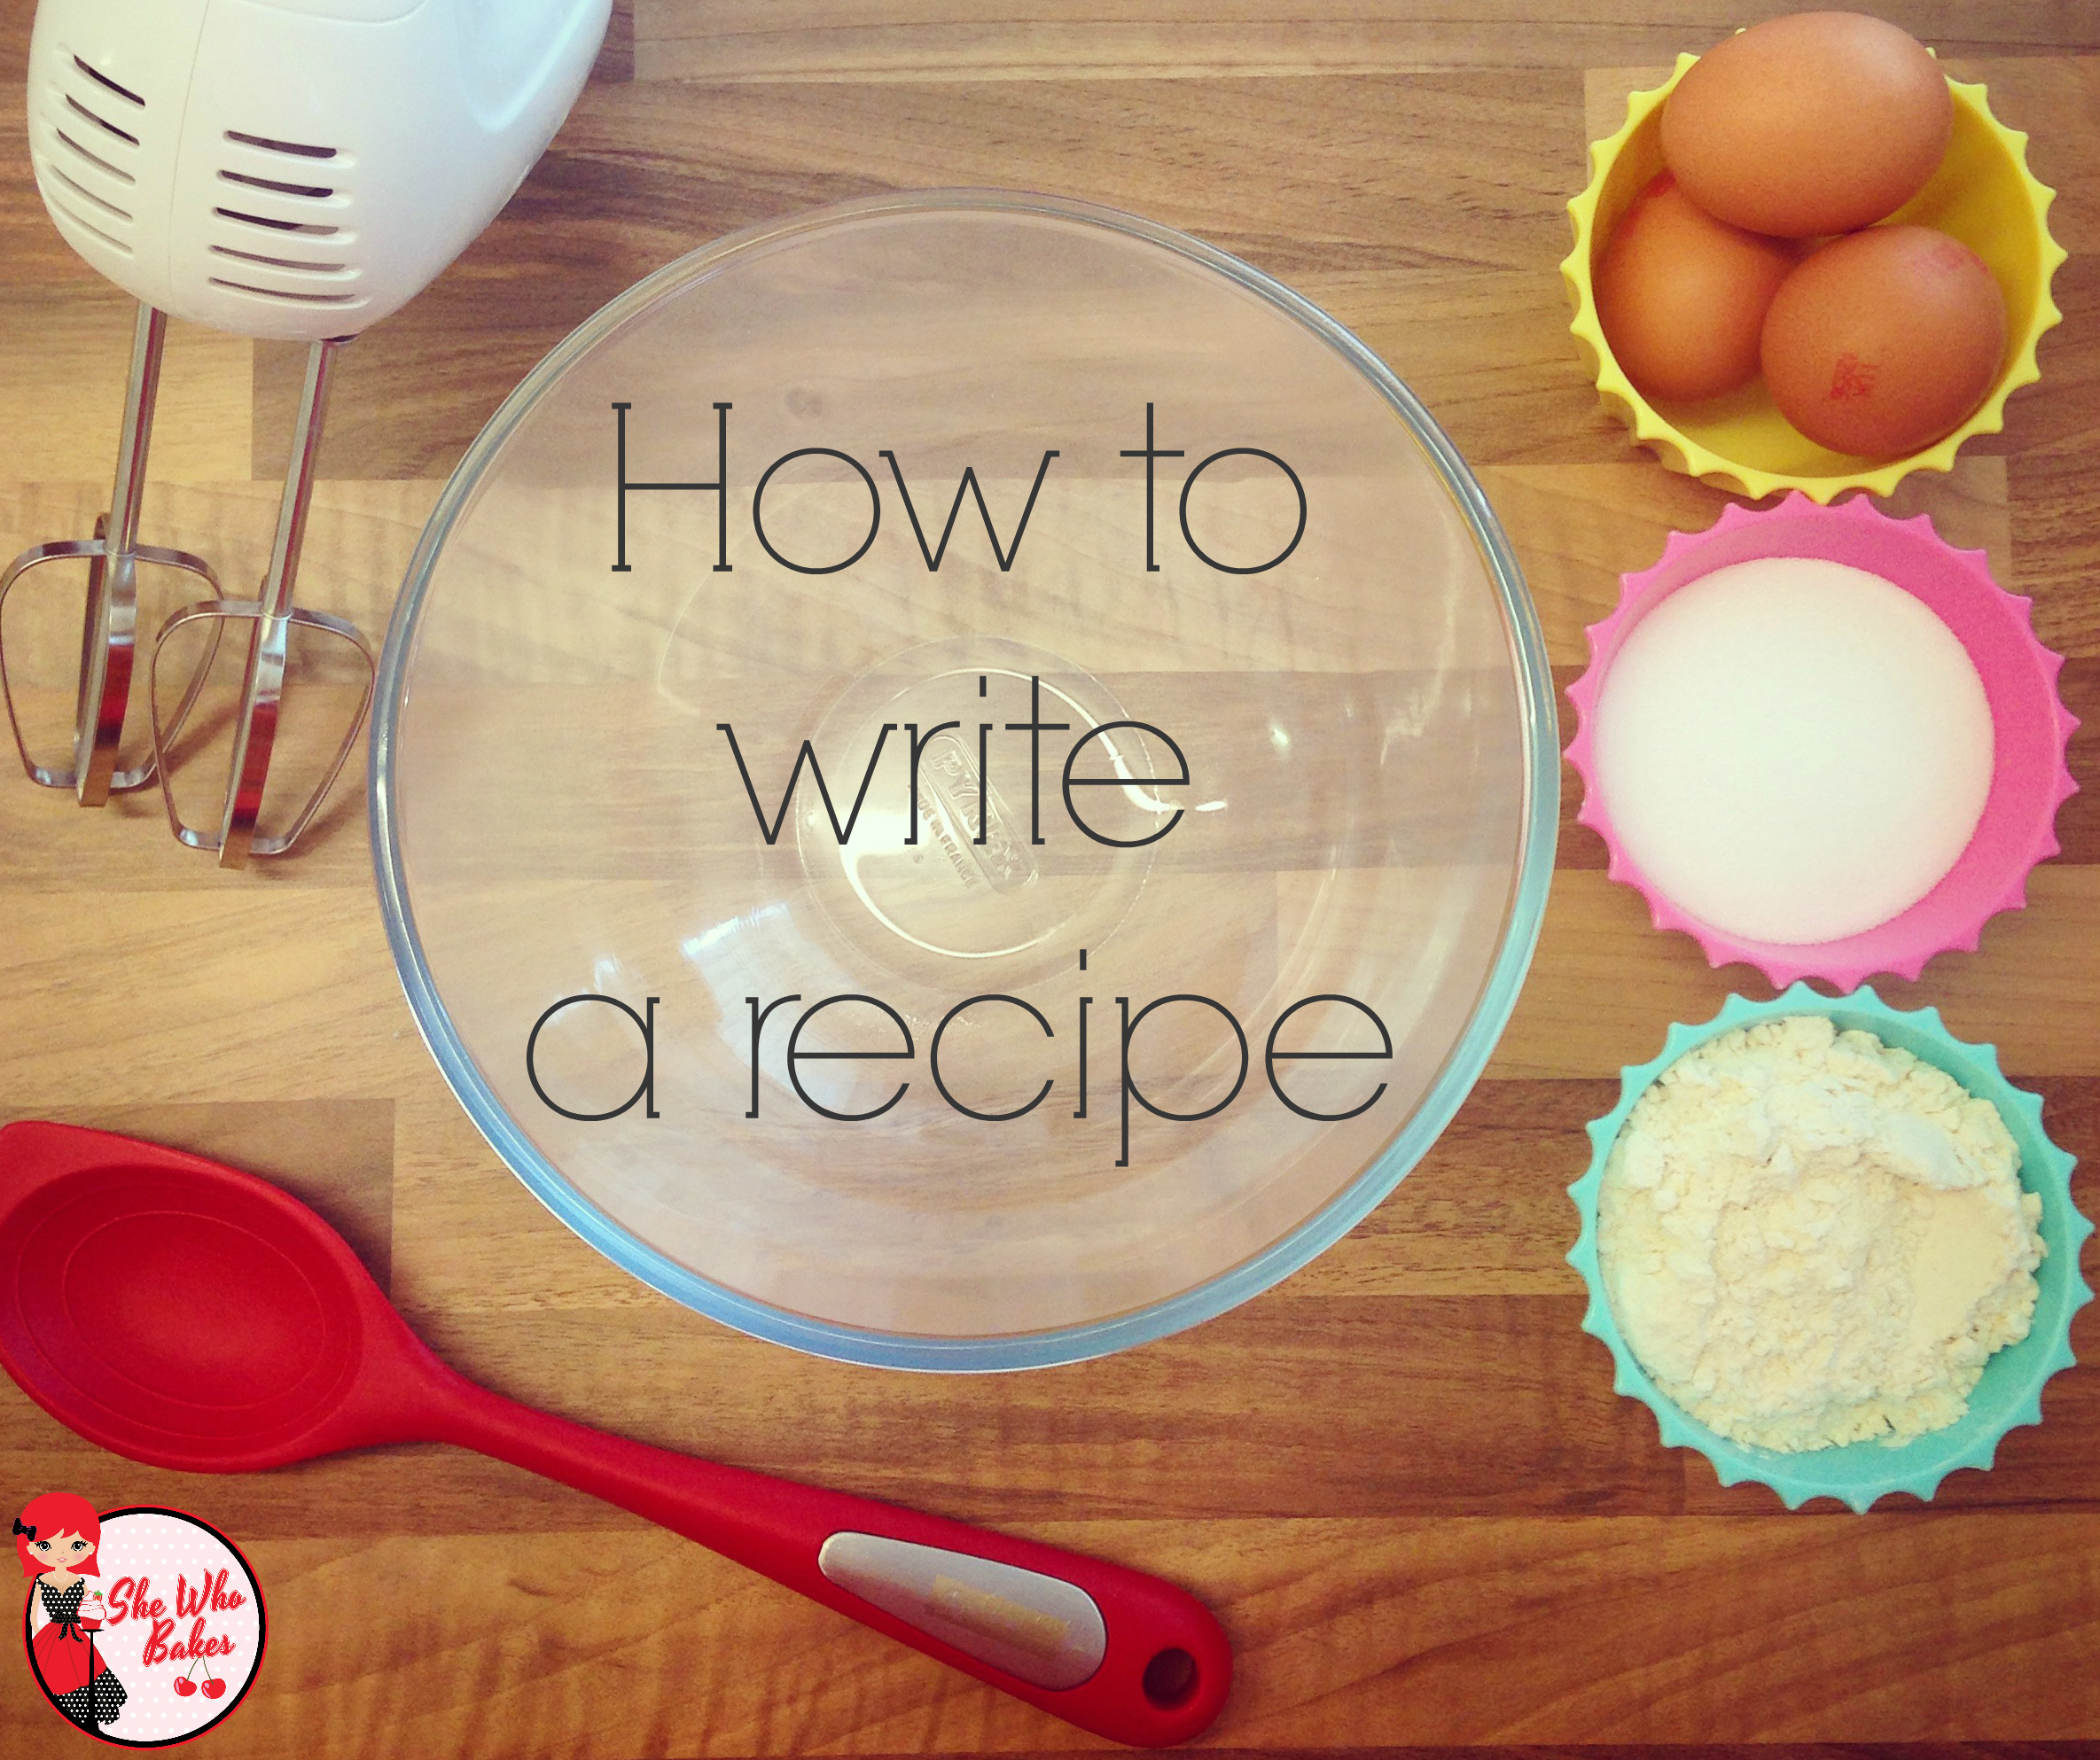 How to Write Recipes - Advice and Tips